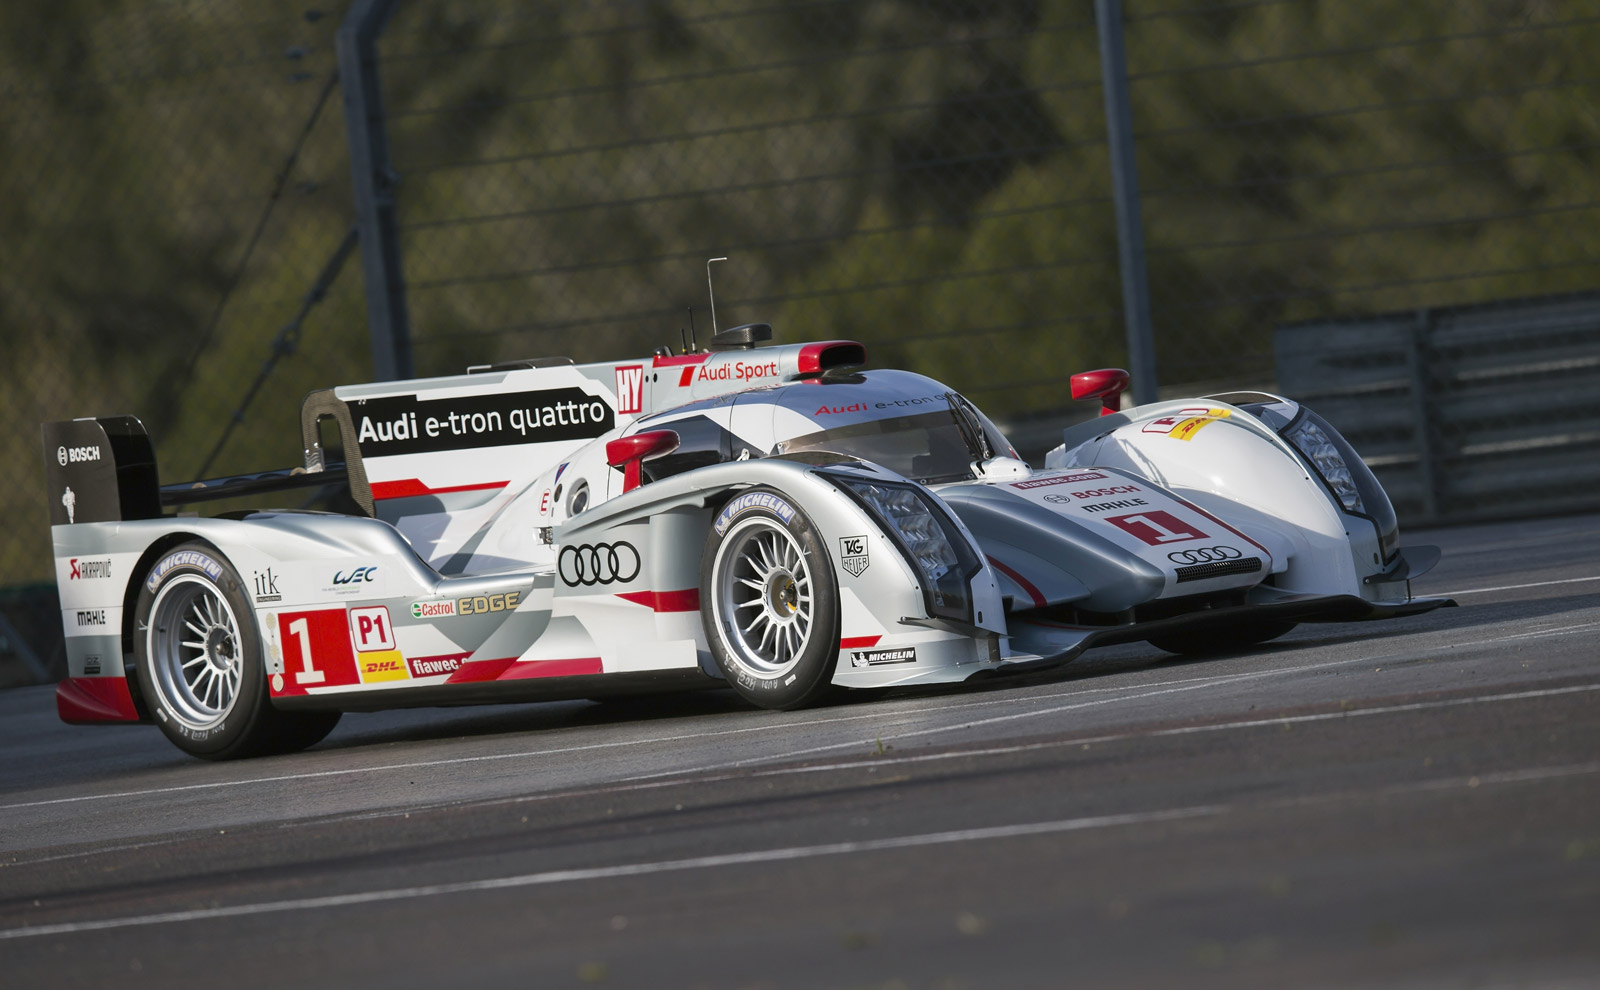 Audi Starts Tests Of Long-Tail R18 e-tron quattro Ahead Of Le Mans